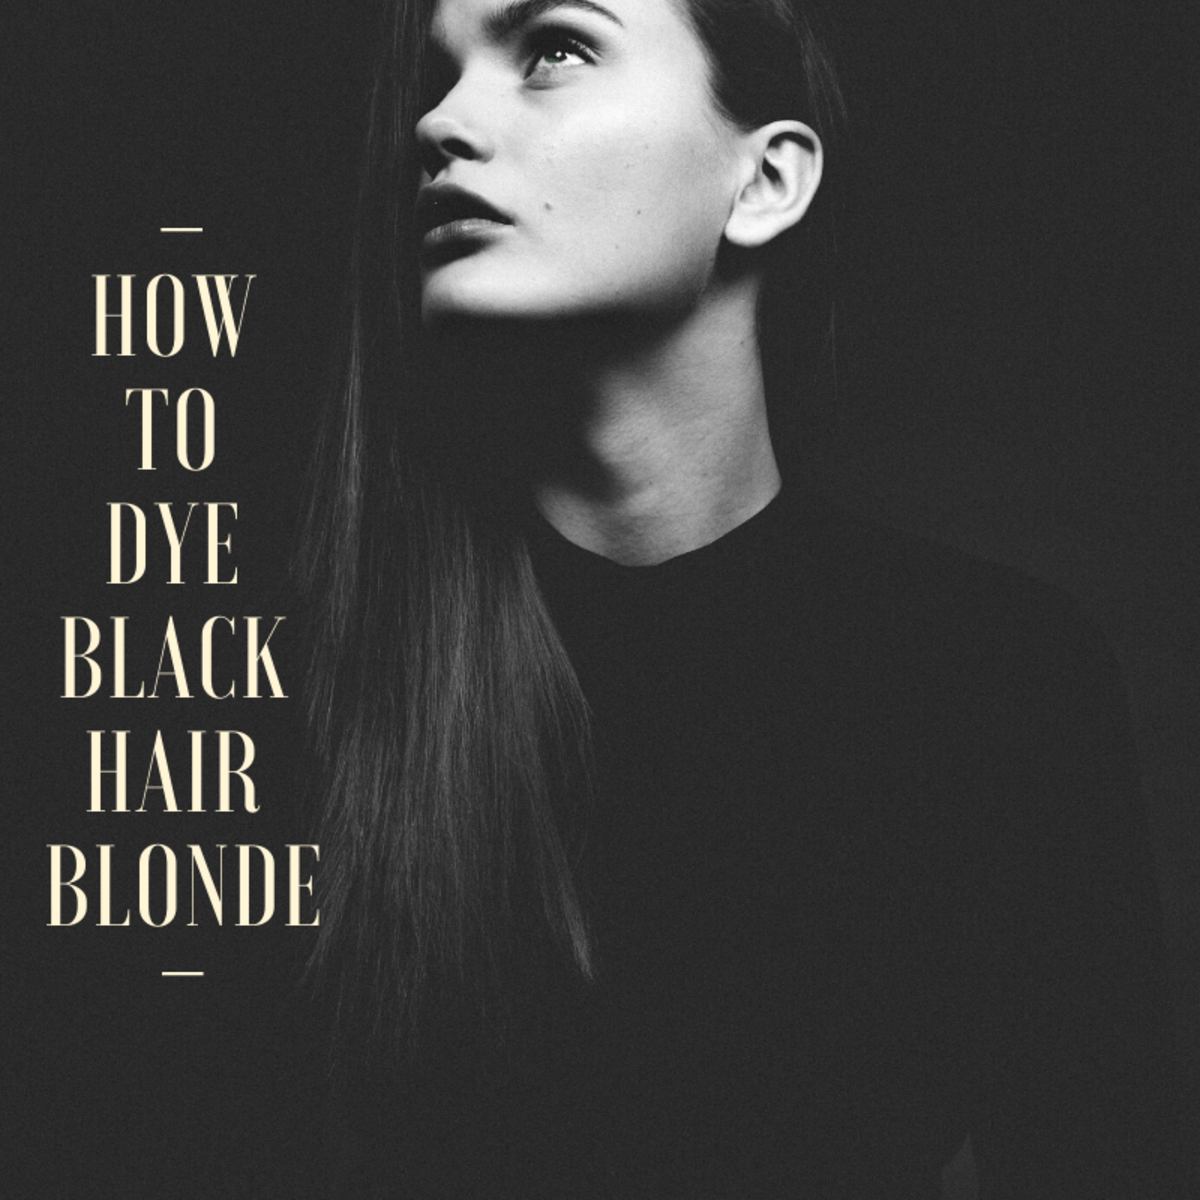 Are you wanting to dye your black hair blonde, but are afraid to? Read on to learn how to do it right.